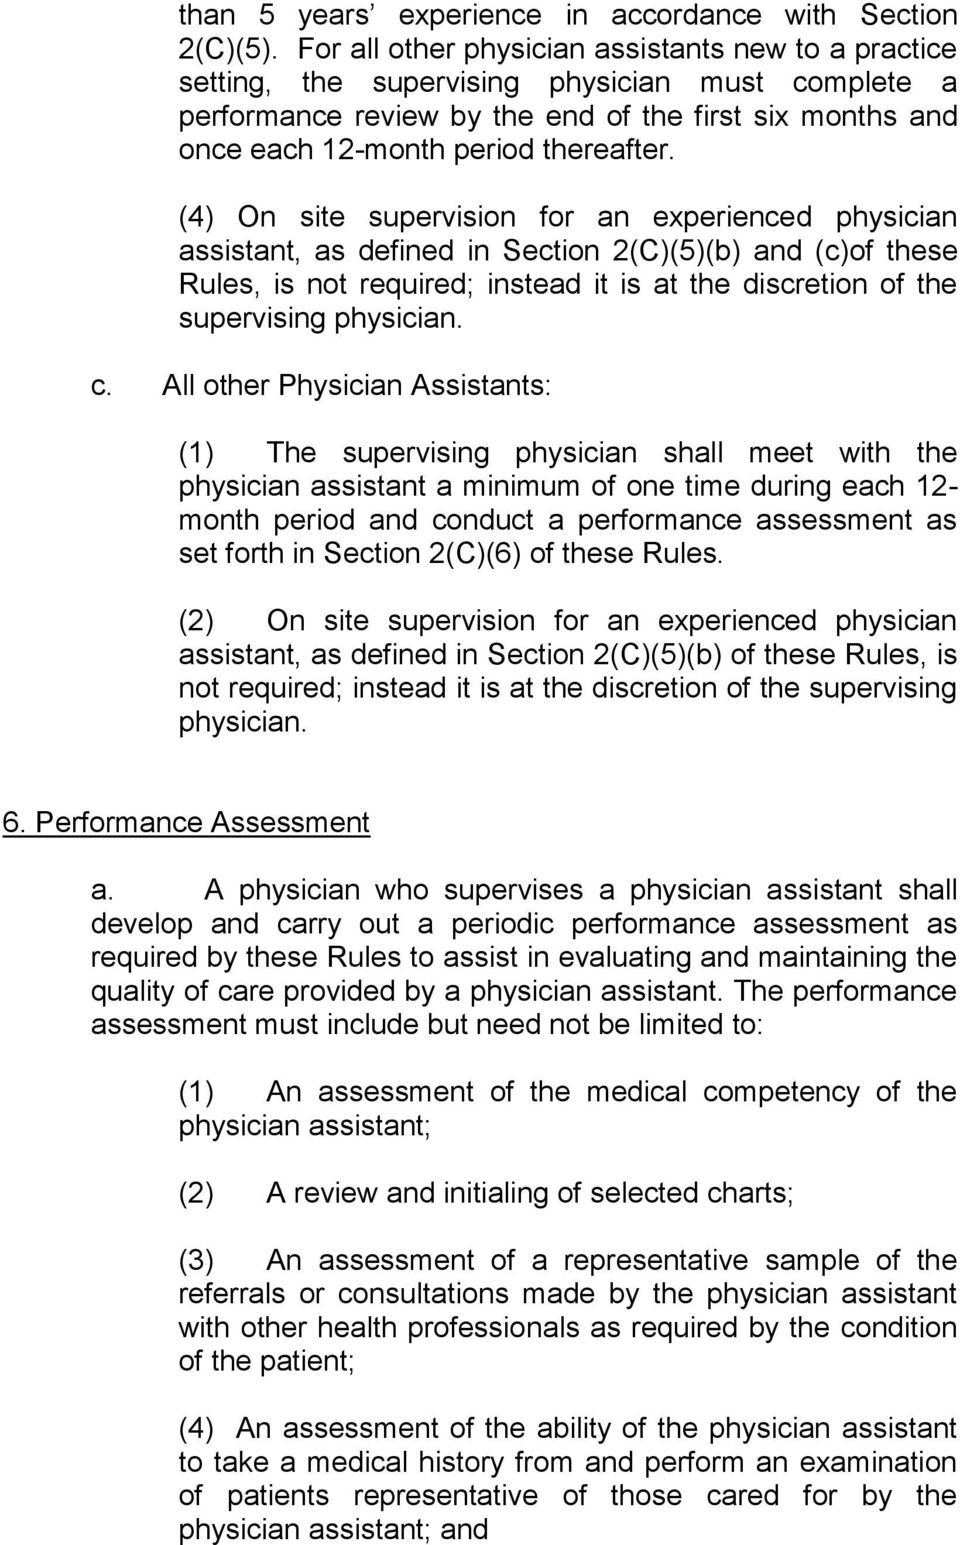 (4) On site supervision for an experienced physician assistant, as defined in Section 2(C)(5)(b) and (c)of these Rules, is not required; instead it is at the discretion of the supervising physician.